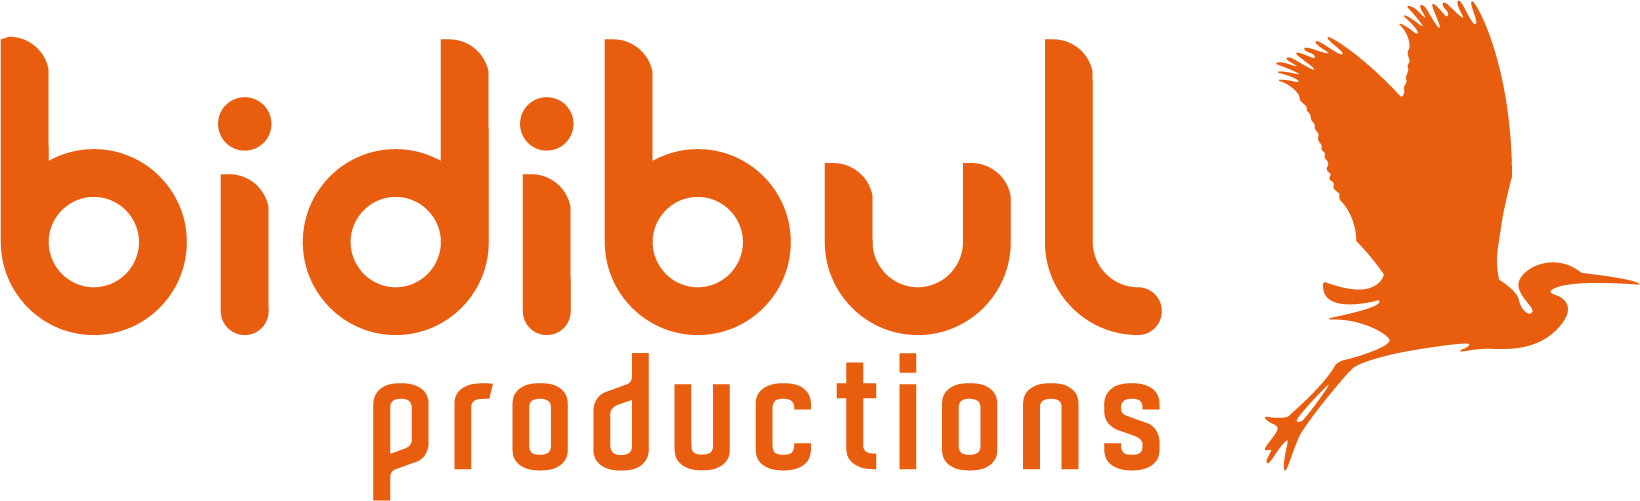 Bidibul Productions